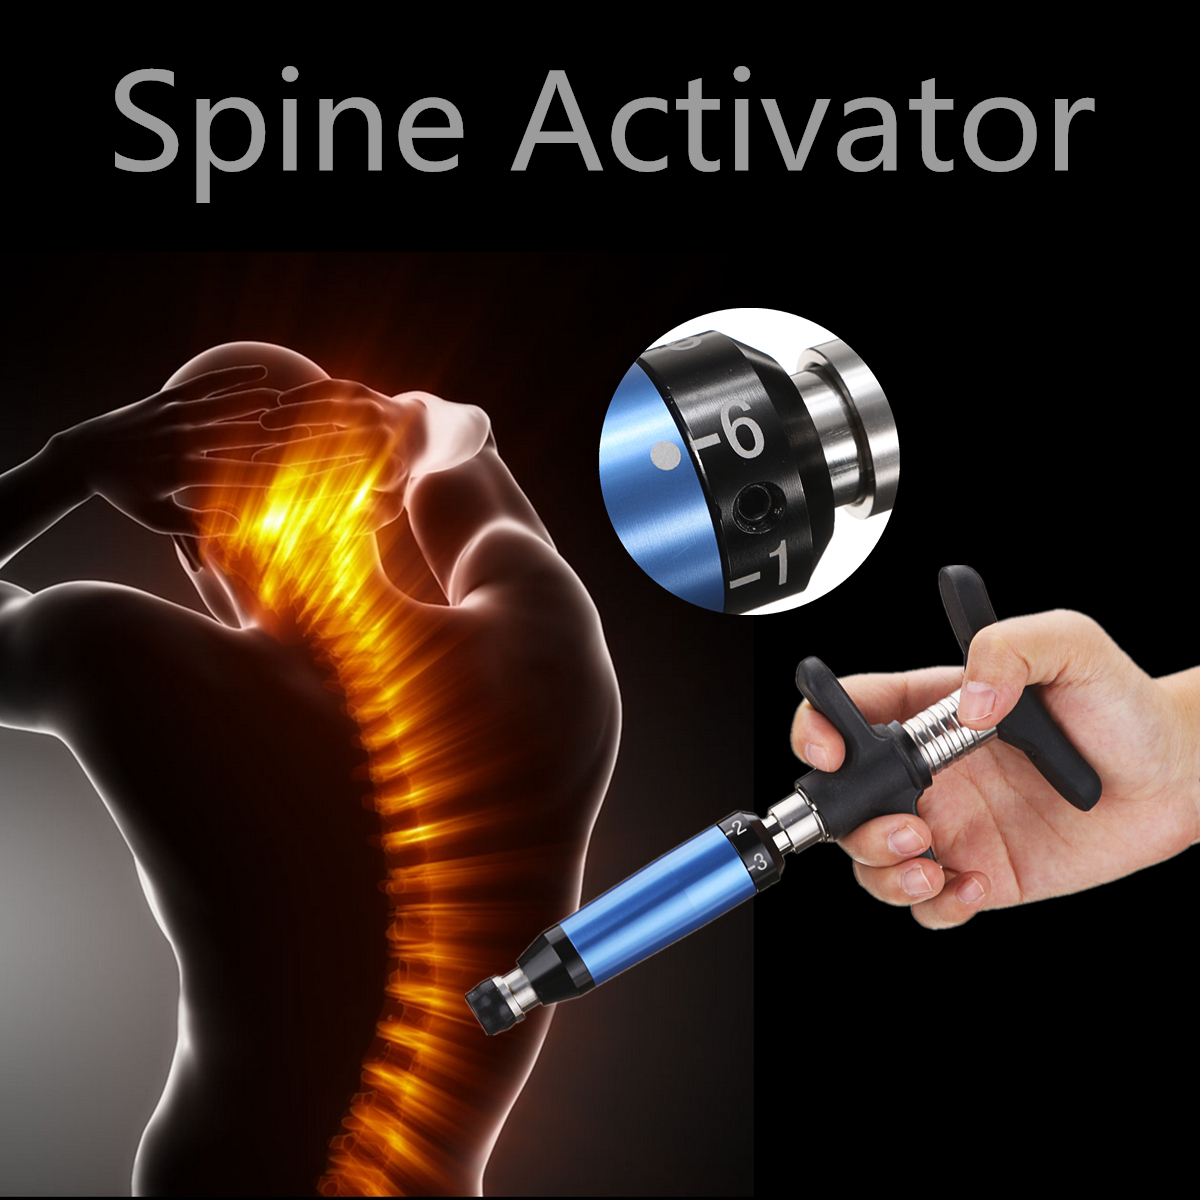 Portable Chiropractic Spine Activator Back Adjusting Tool